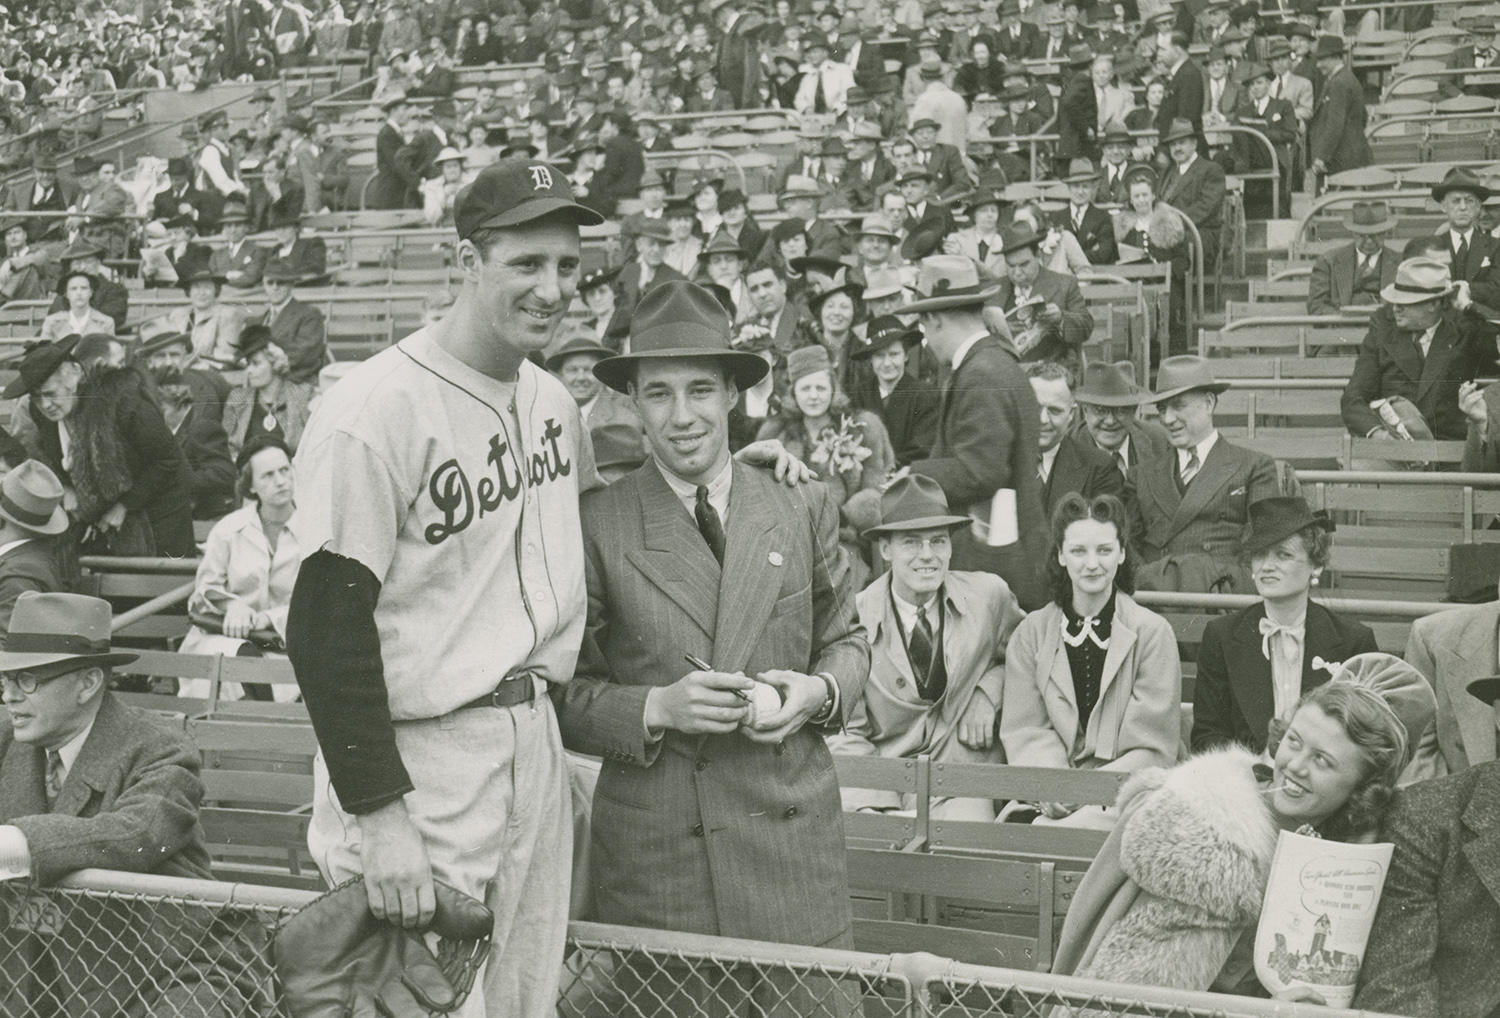 "Bob Feller poses for a photograph with Detroit Tigers' star Hank Greenberg. Feller, standing on the spectator side of the fence, is seen holding a baseball and marker, waiting for an autograph. <a href=""https://collection.baseballhall.org/islandora/object/islandora%3A612130"">PASTIME</a> (National Baseball Hall of Fame and Museum)"